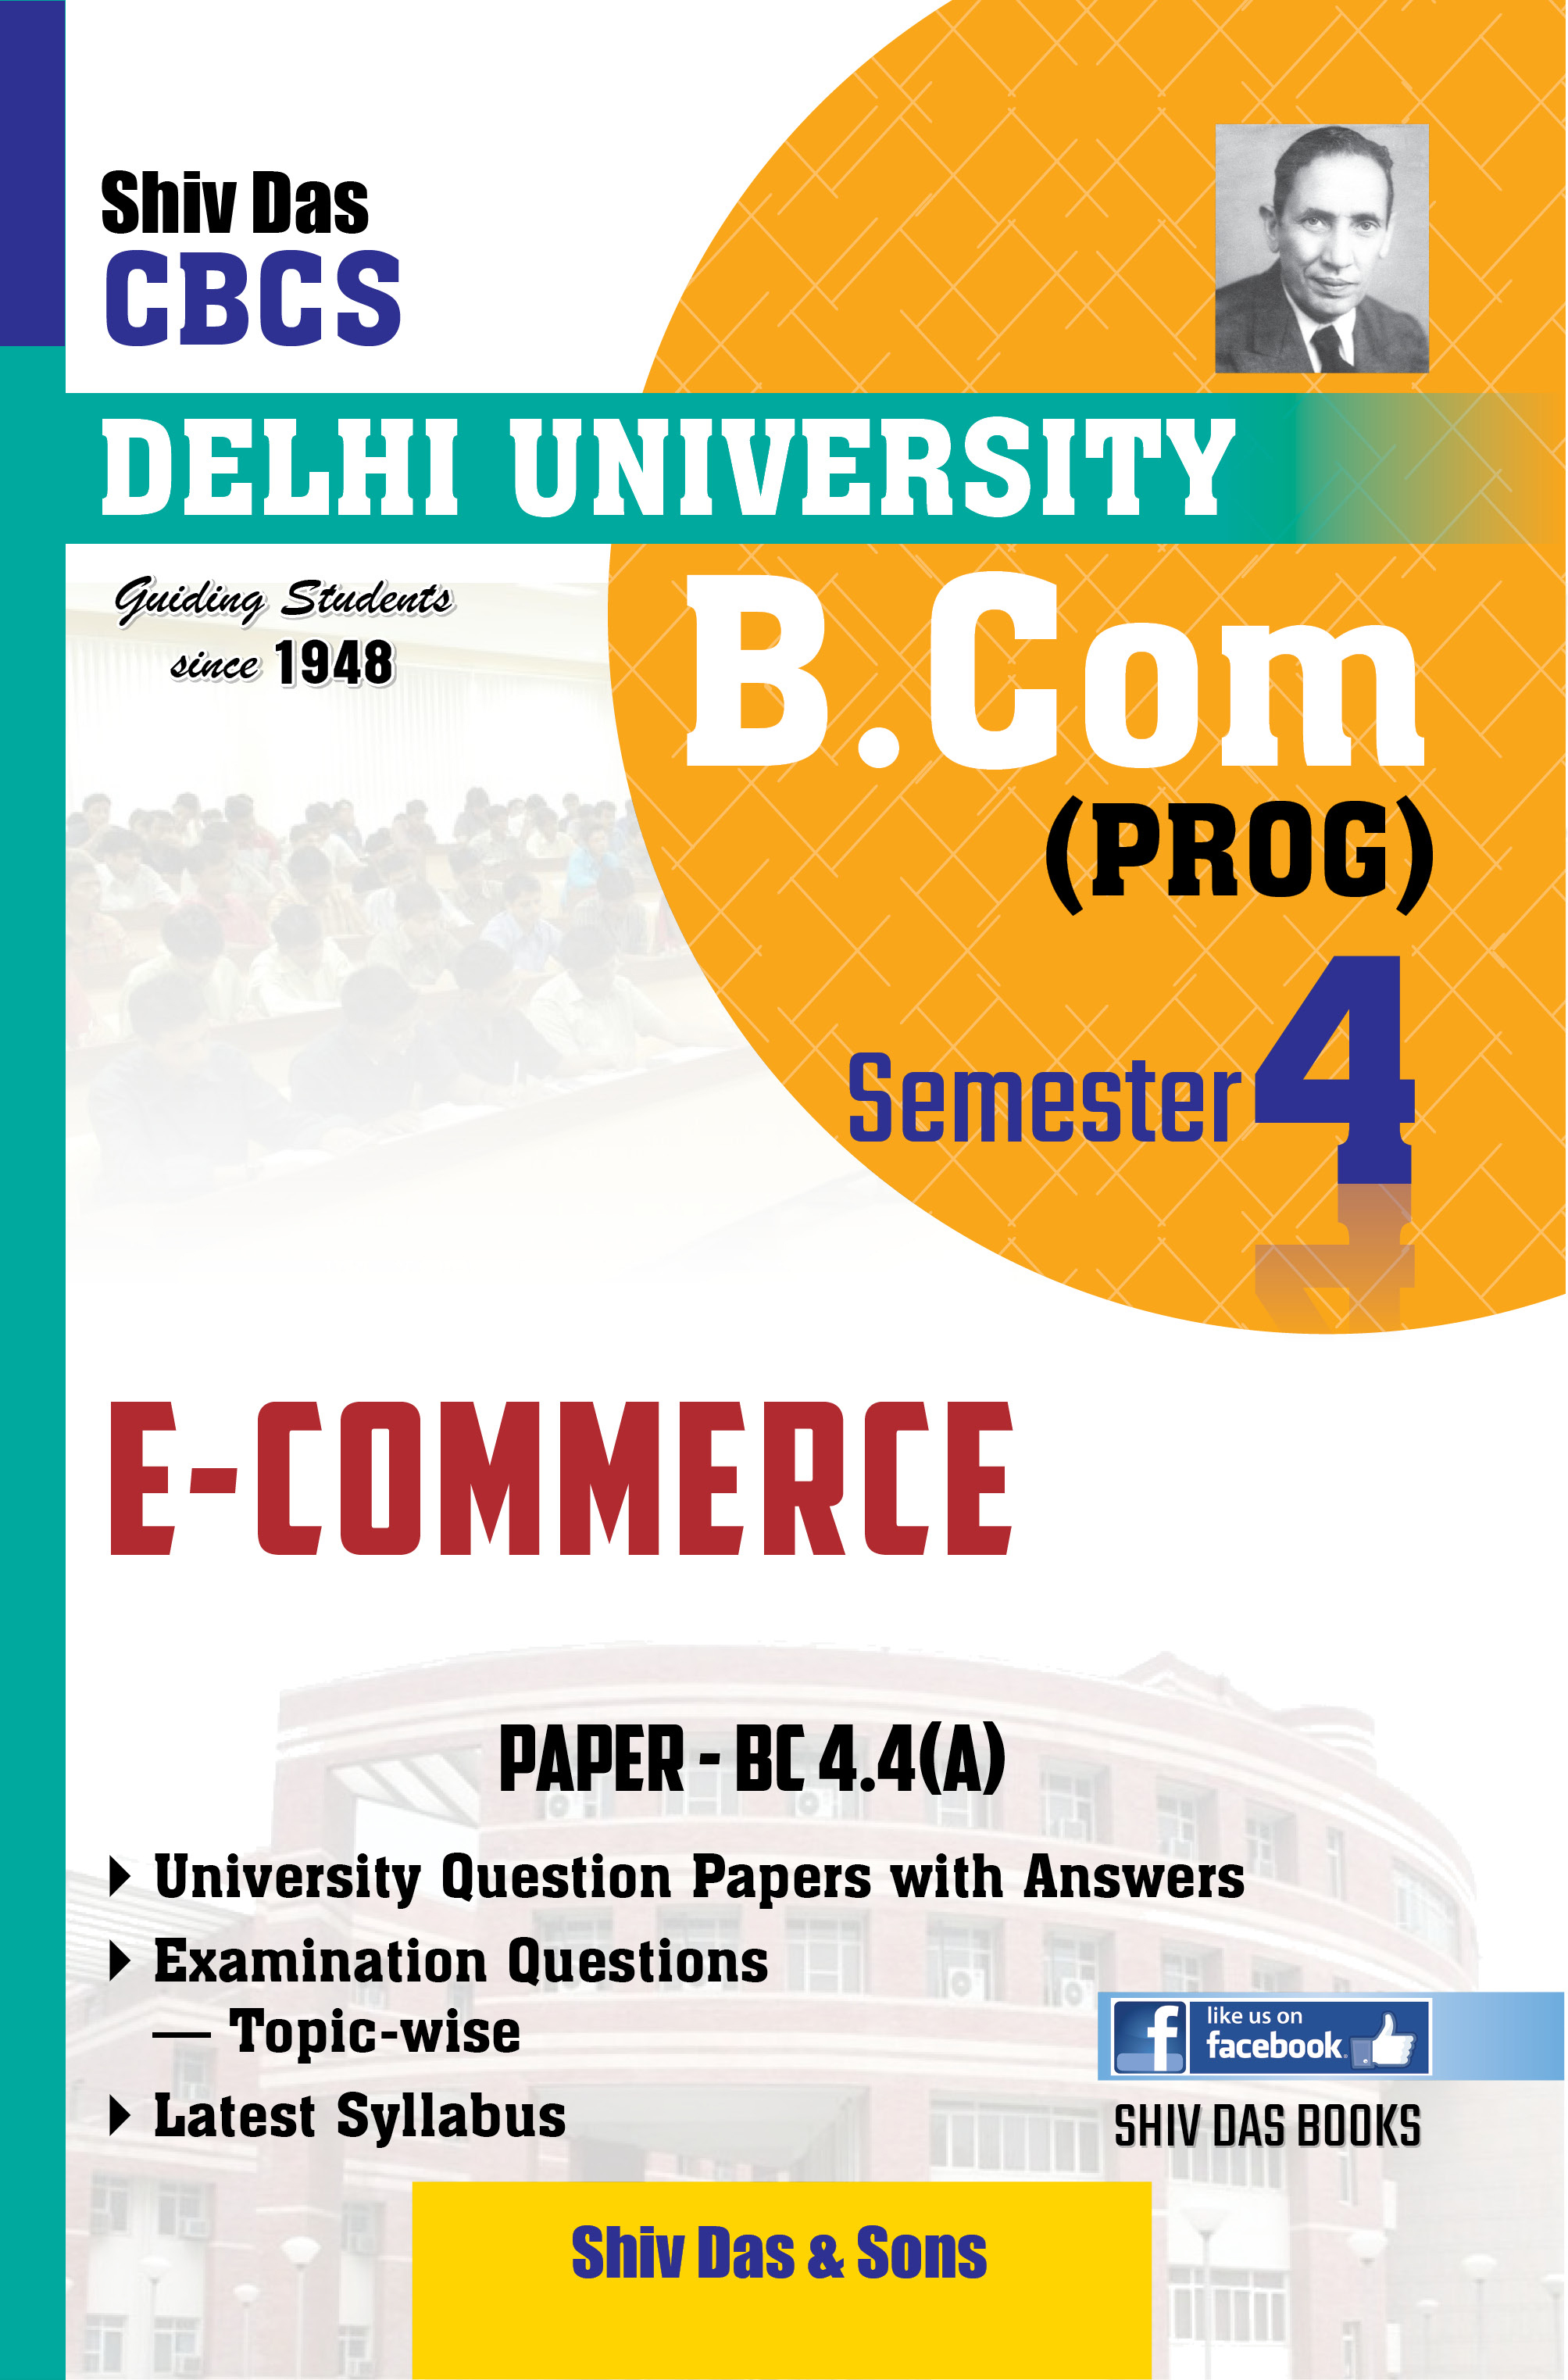 E-Commerce for B.Com Prog Semester-4